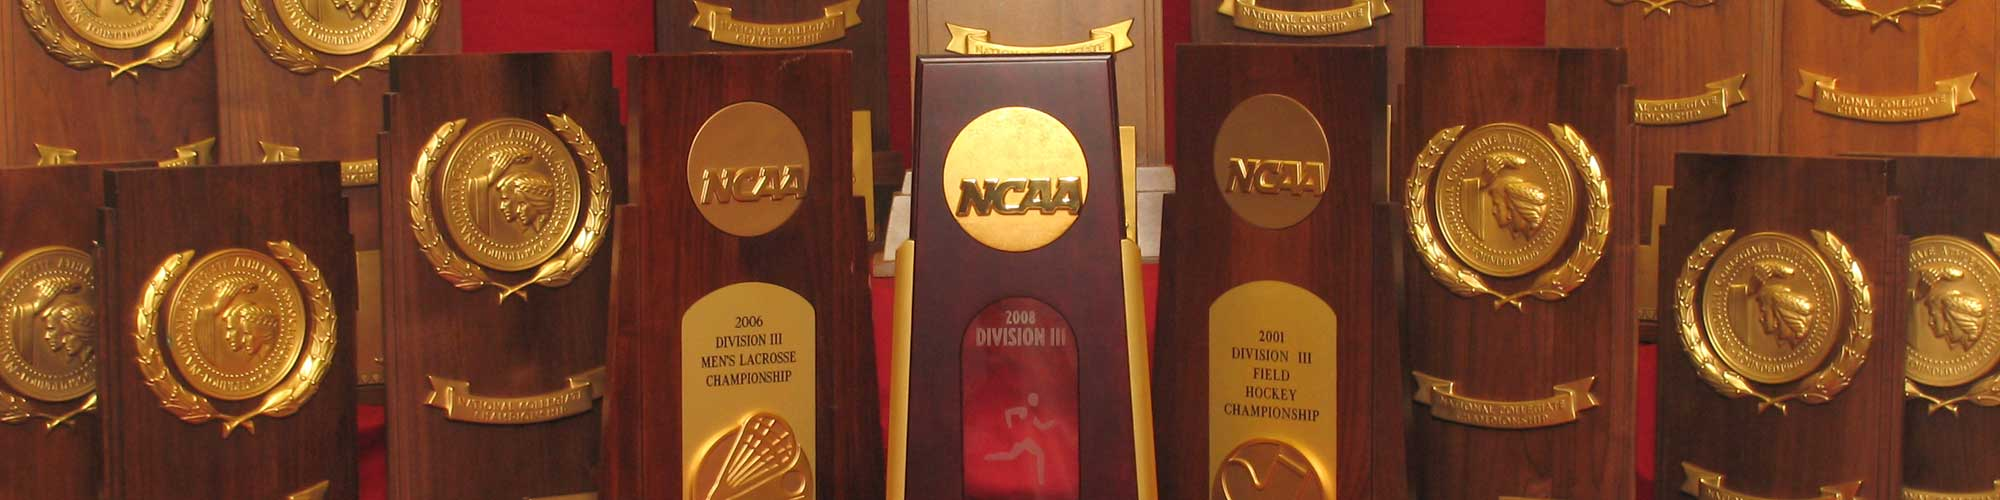 National Championship trophies on display